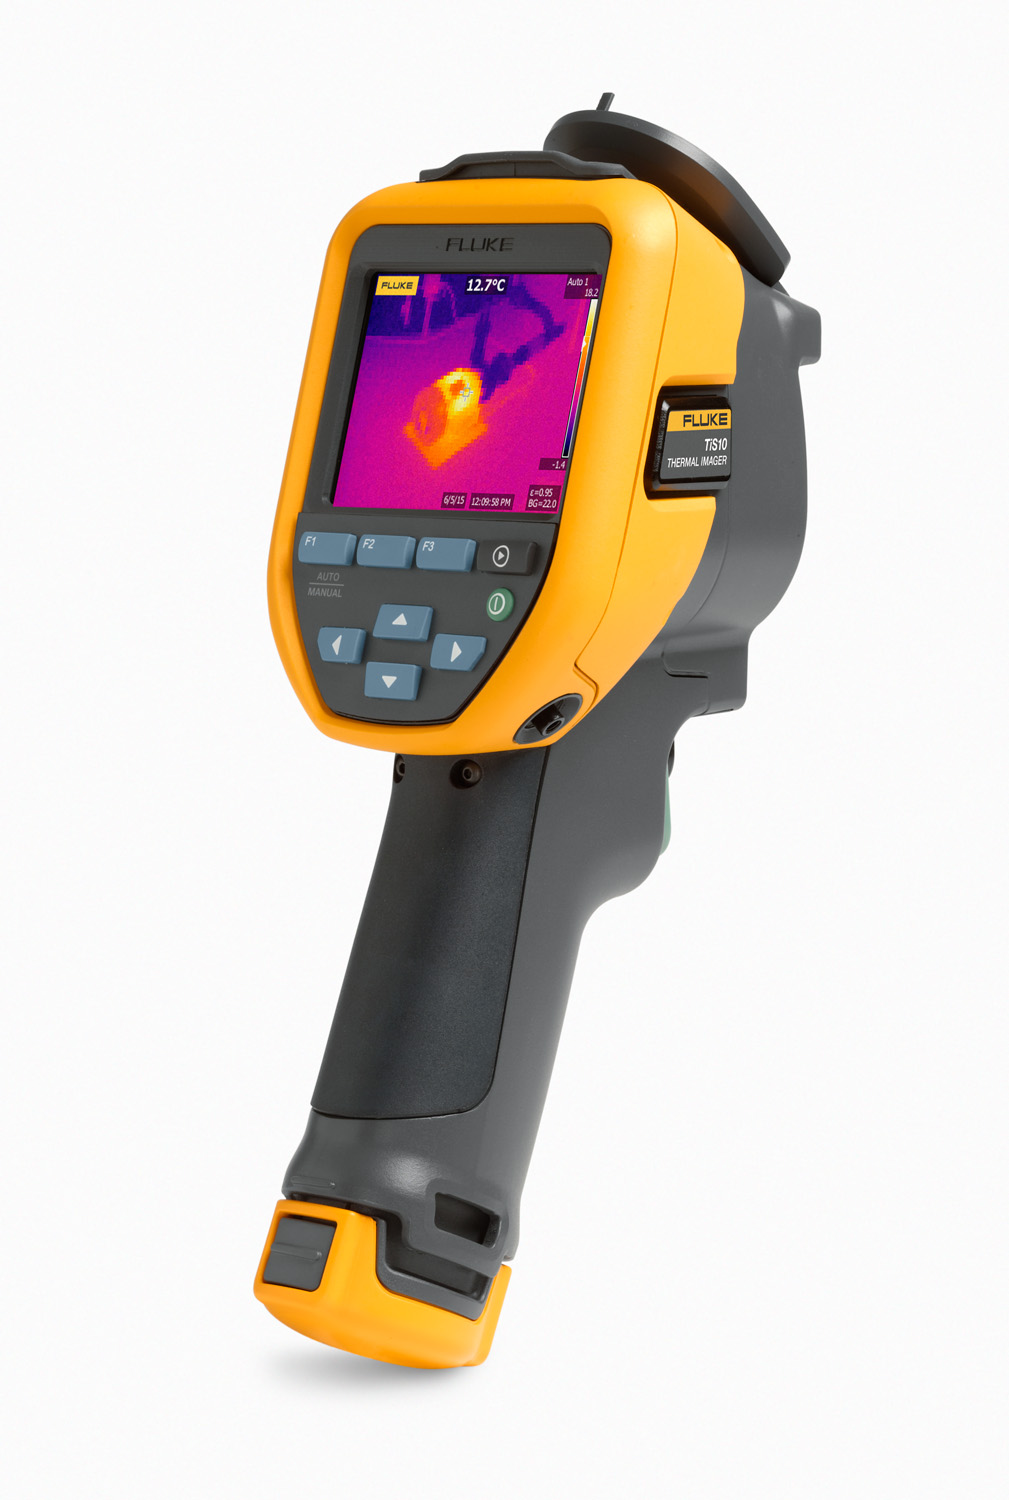 FLUKE TIS10 9HZ 9Hz/80X60 RESOLUTION FIXED FOCUS THERMAL IMAGER (-4 TO 482 F) 4697036